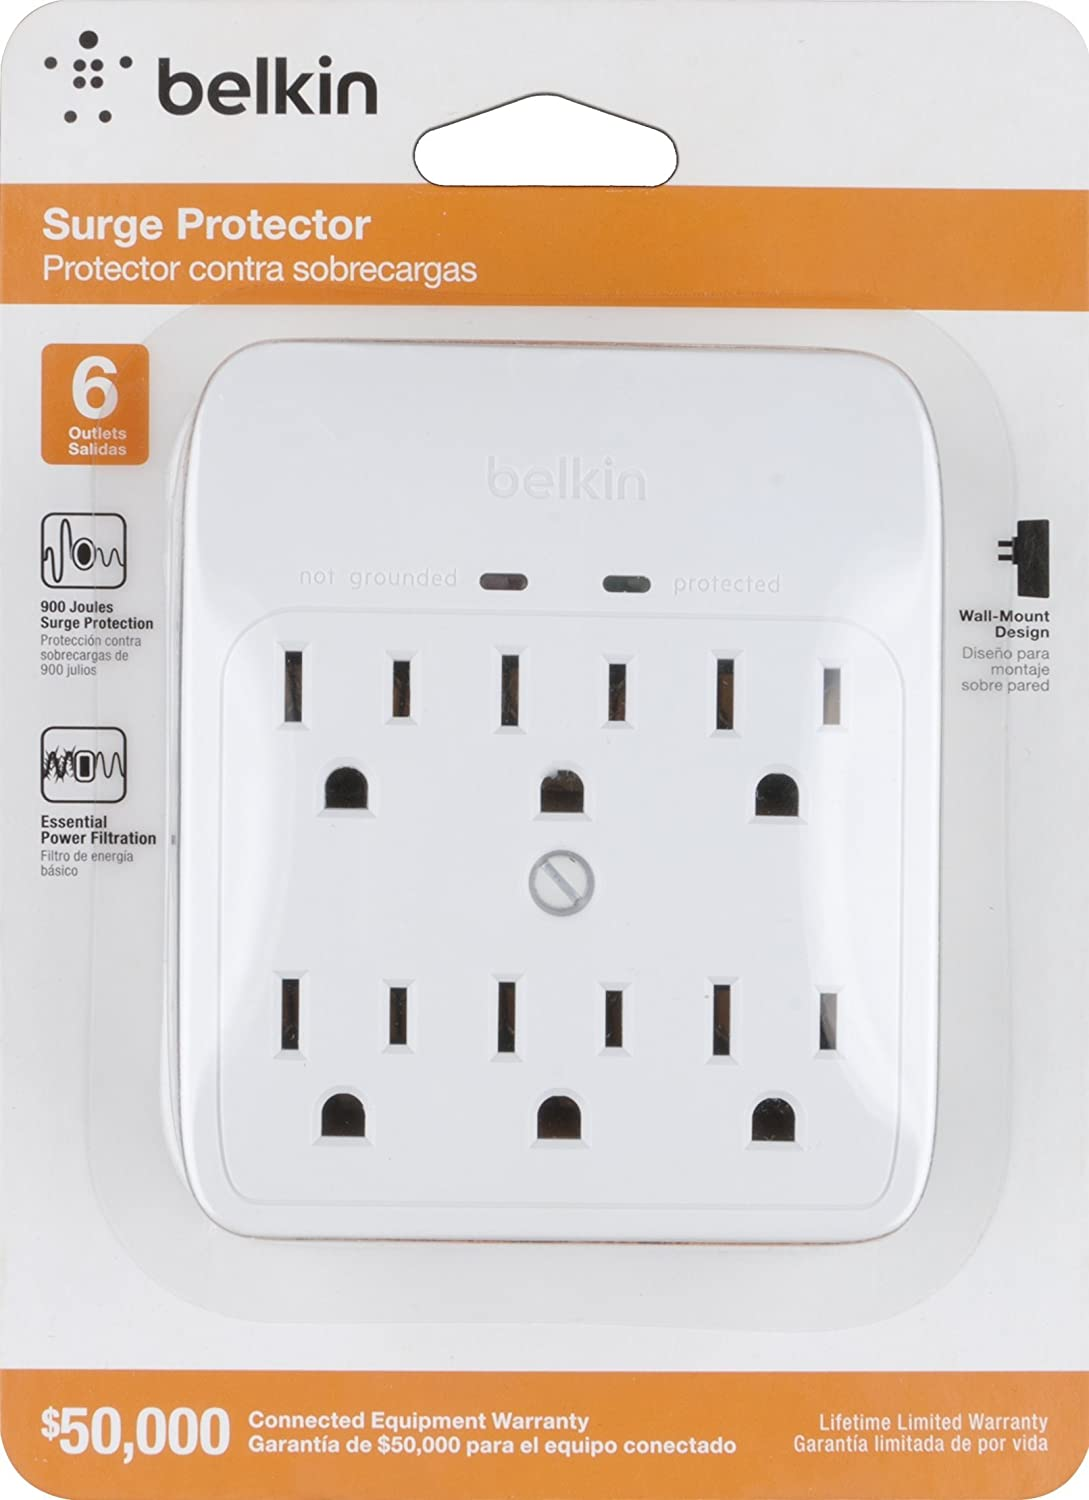 Amazon.com: Belkin BSQ600bgW 6-Outlet Wall-Mount Surge Protector, 900 Joules (Renewed): Home Audio & Theater